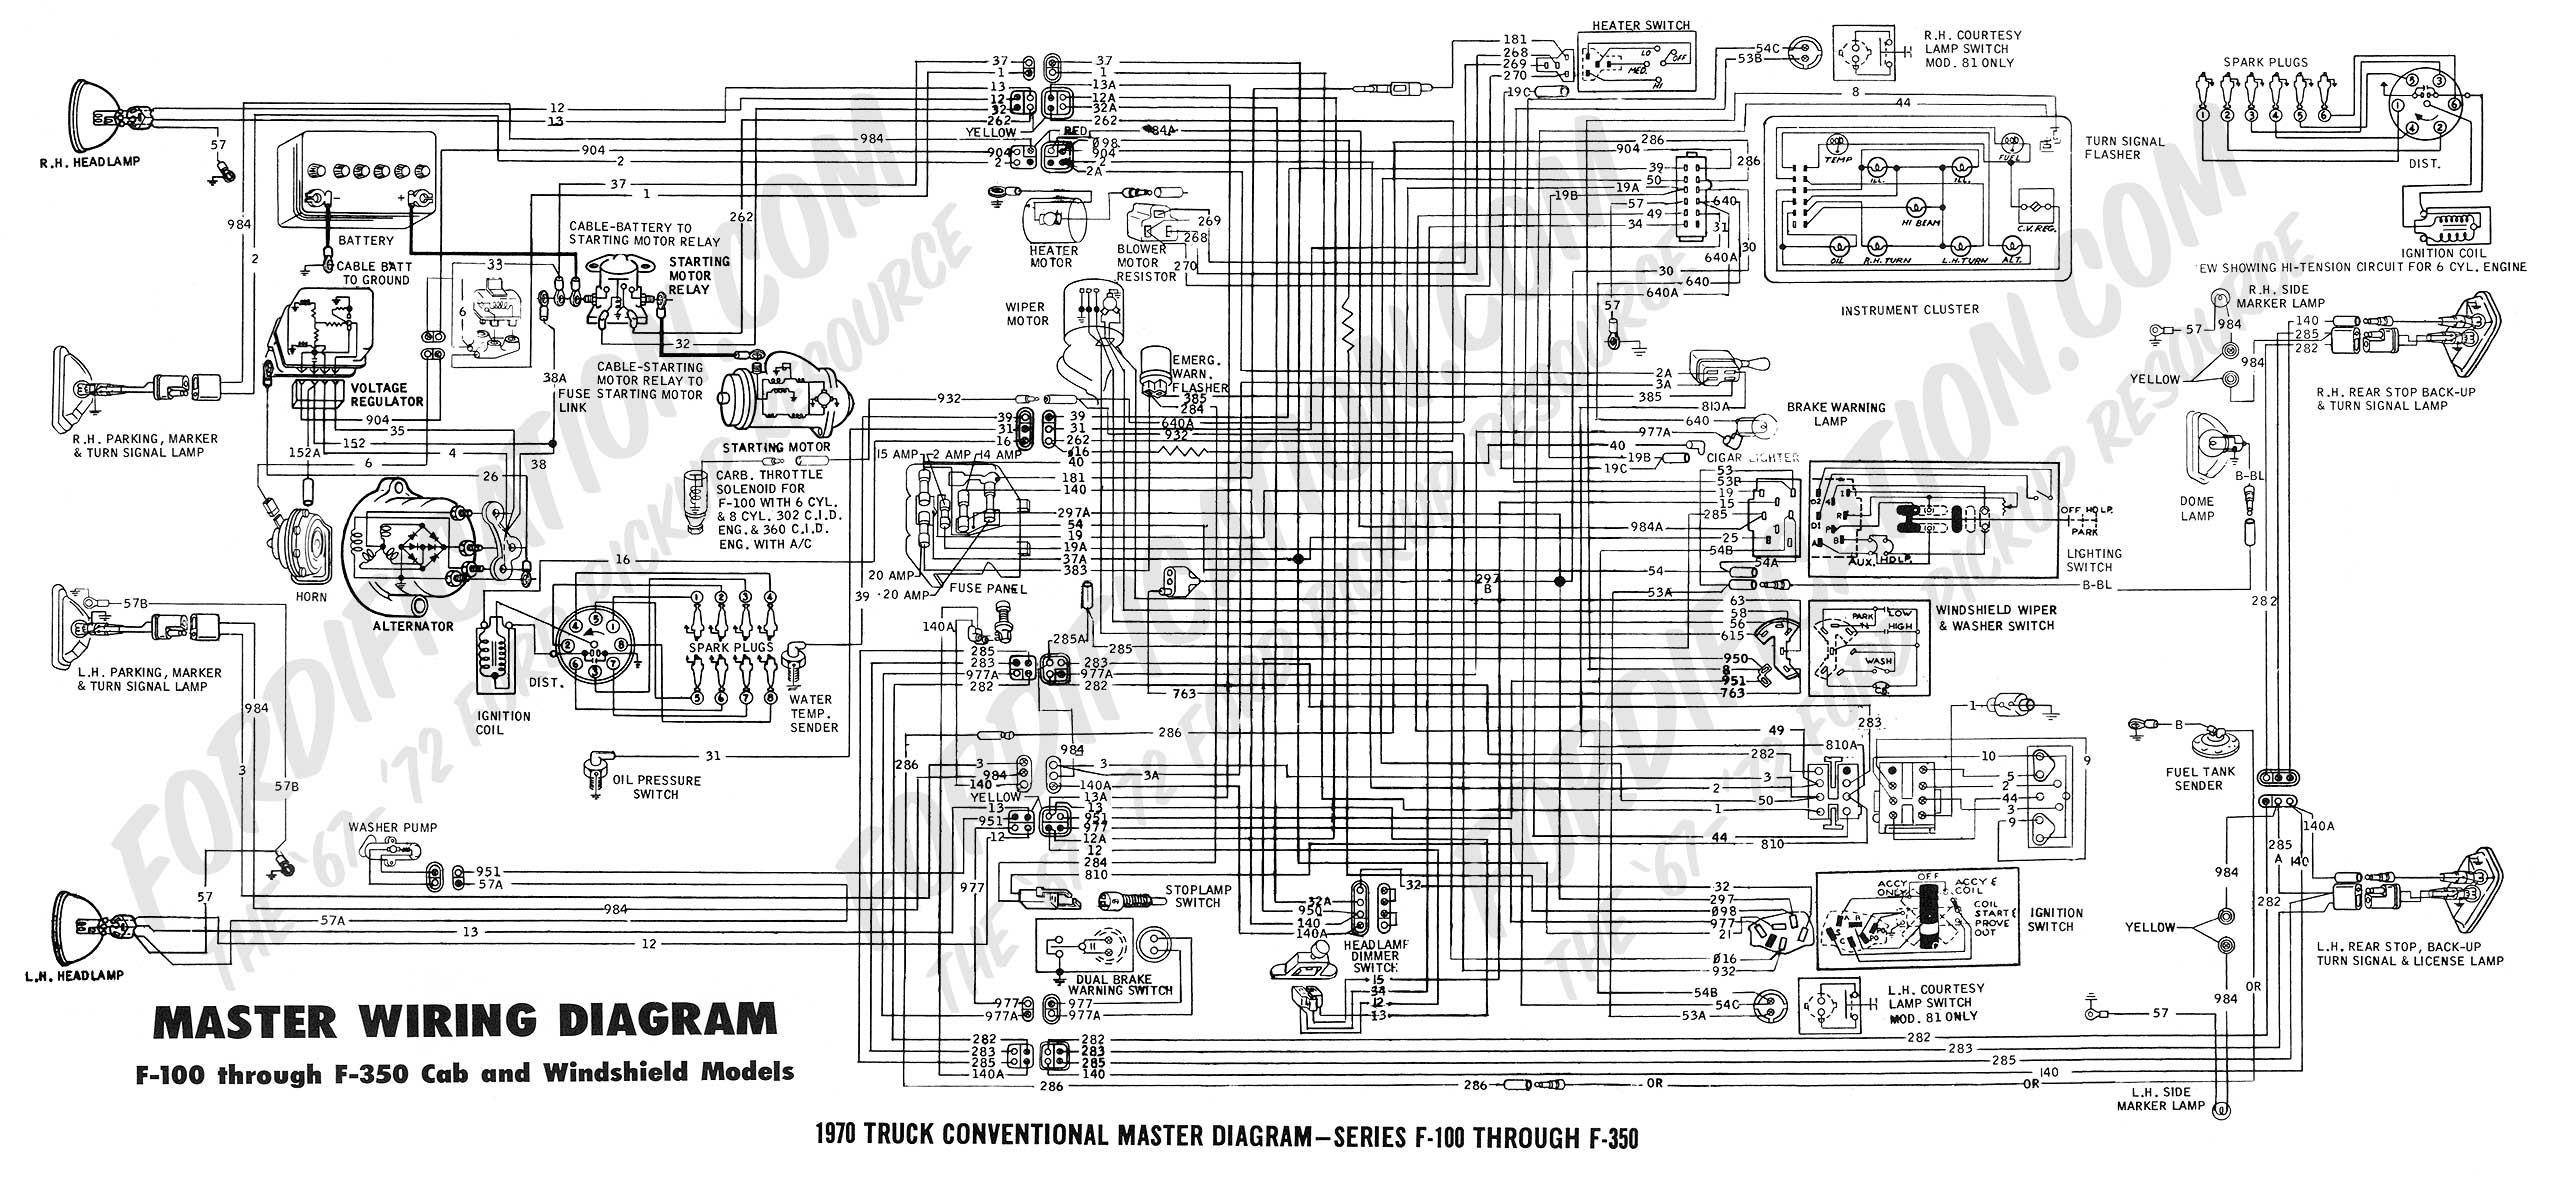 wiring diagram 70_master ford truck technical drawings and schematics section h wiring old ford wiring harness at gsmportal.co